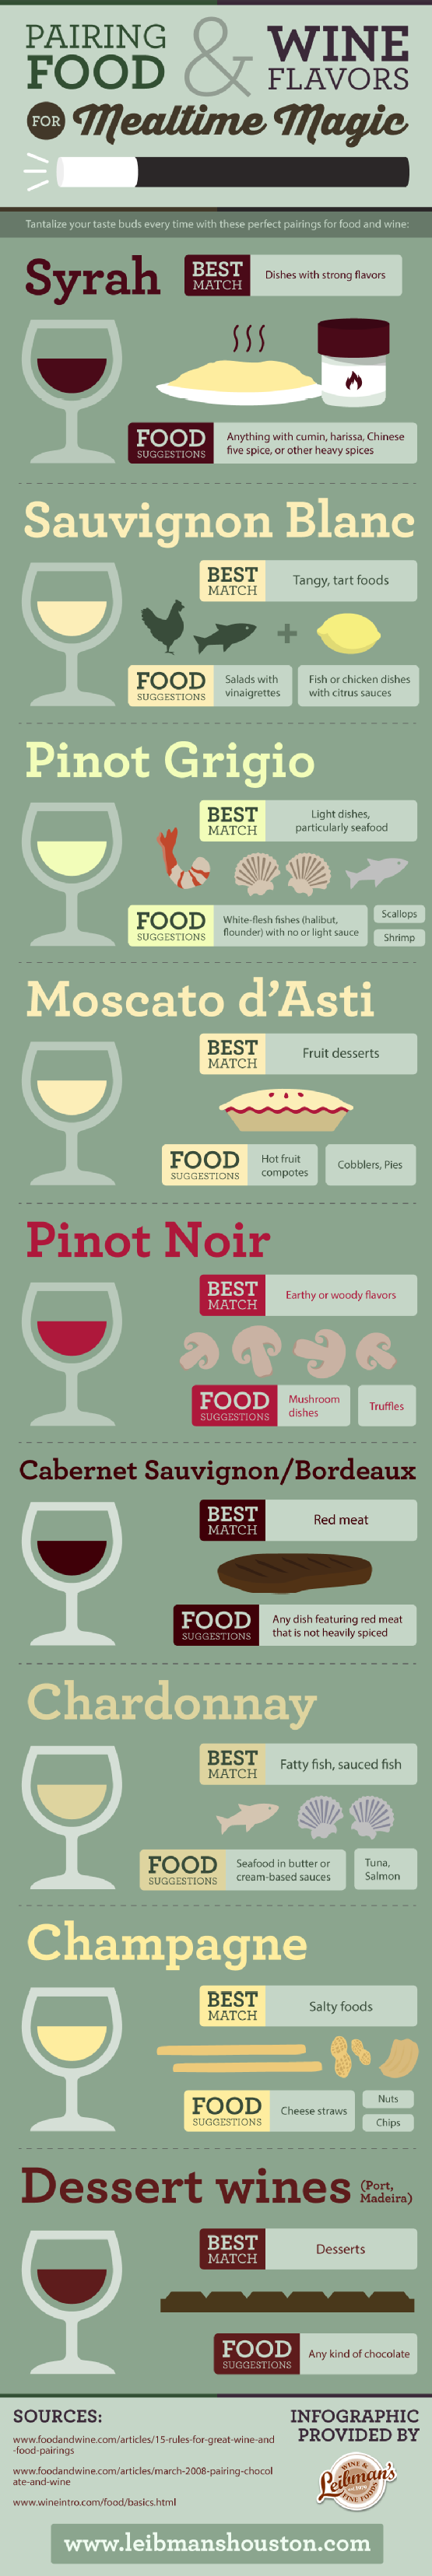 Some top #tips on how to #pair well liked ingredients with certain #wines - from red meats and fish to cheese and chocolate - http://finedininglovers.com/blog/food-drinks/food-and-wine-pairing-infographic/